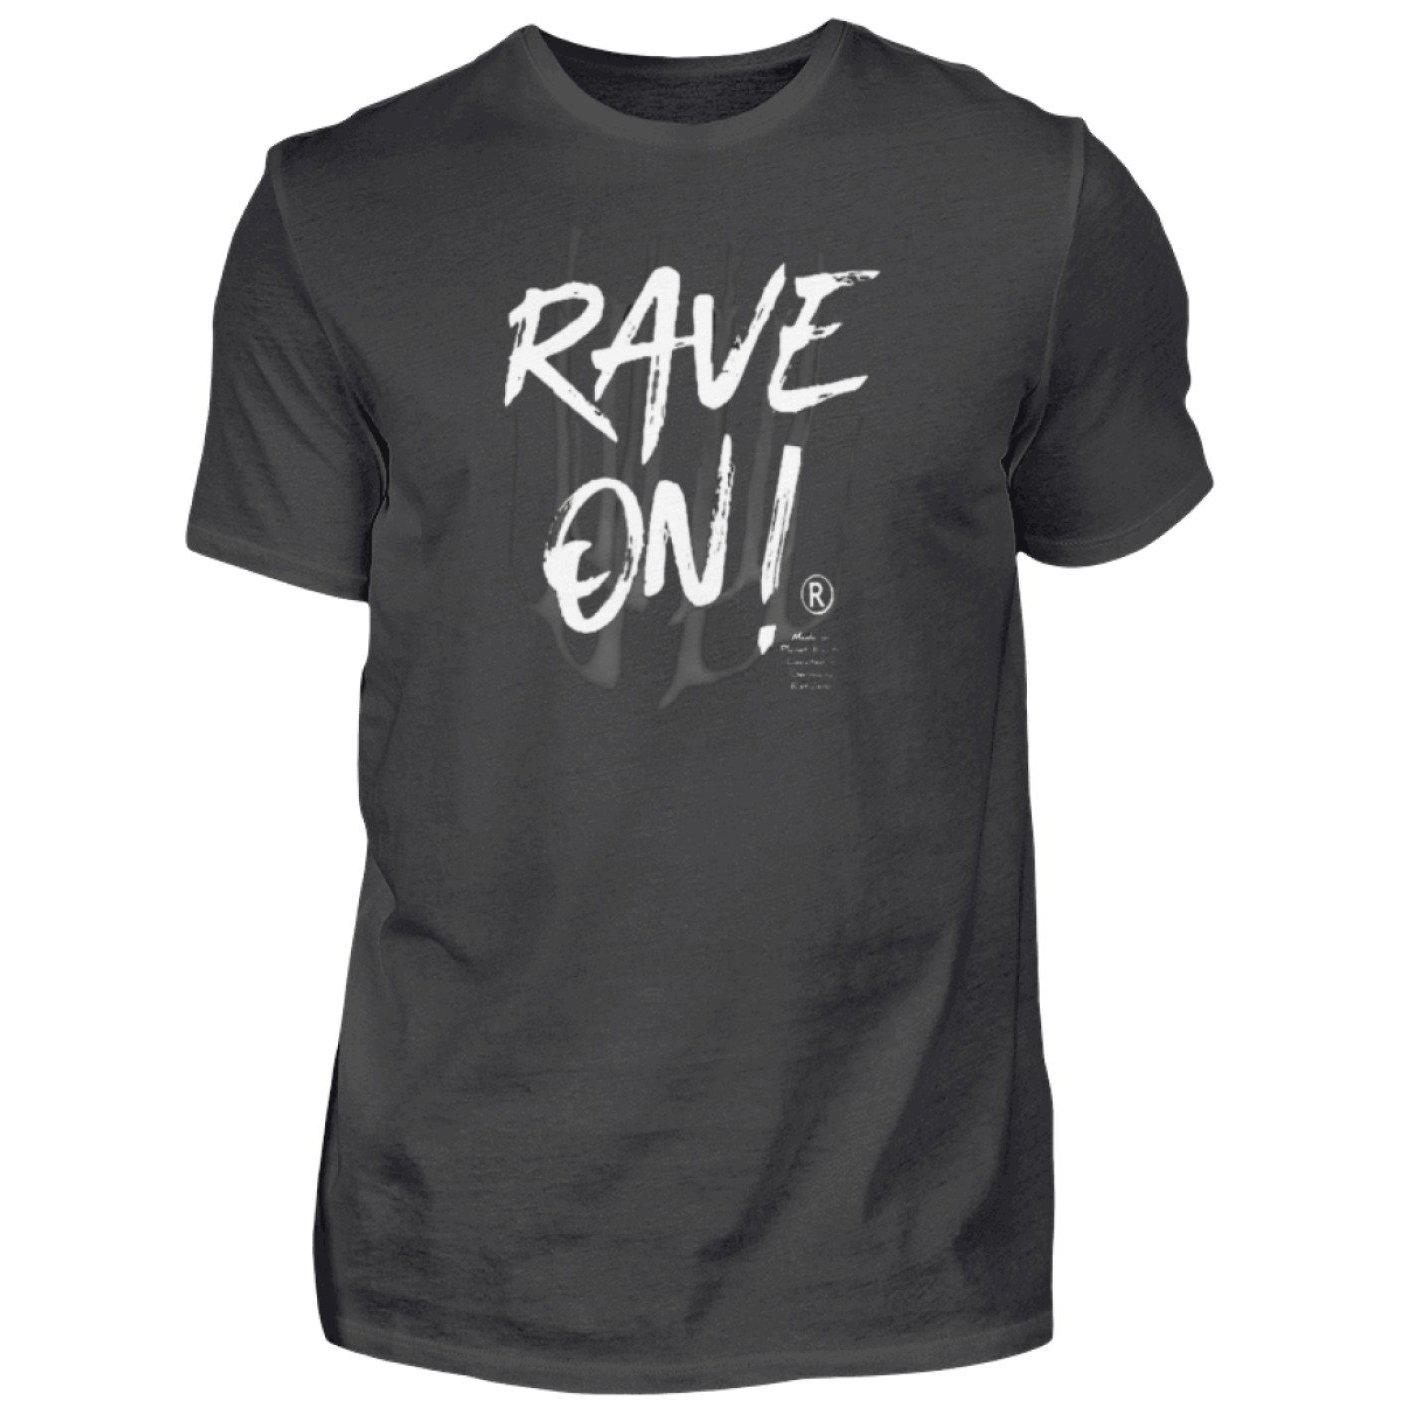 Rave On!® - Made On Planet Earth B2k20 - Herren Premiumshirt-Herren Premium Shirt-Graphite (Solid)-S-Rave-On! I www.rave-on.shop I Deine Rave & Techno Szene Shop I brand, Design - Rave On!® - Made On Planet Earth B2k20, Global recommendation, madeonpr, marke, on, rave, raver, techno - Sexy Festival Streetwear , Clubwear & Raver Style